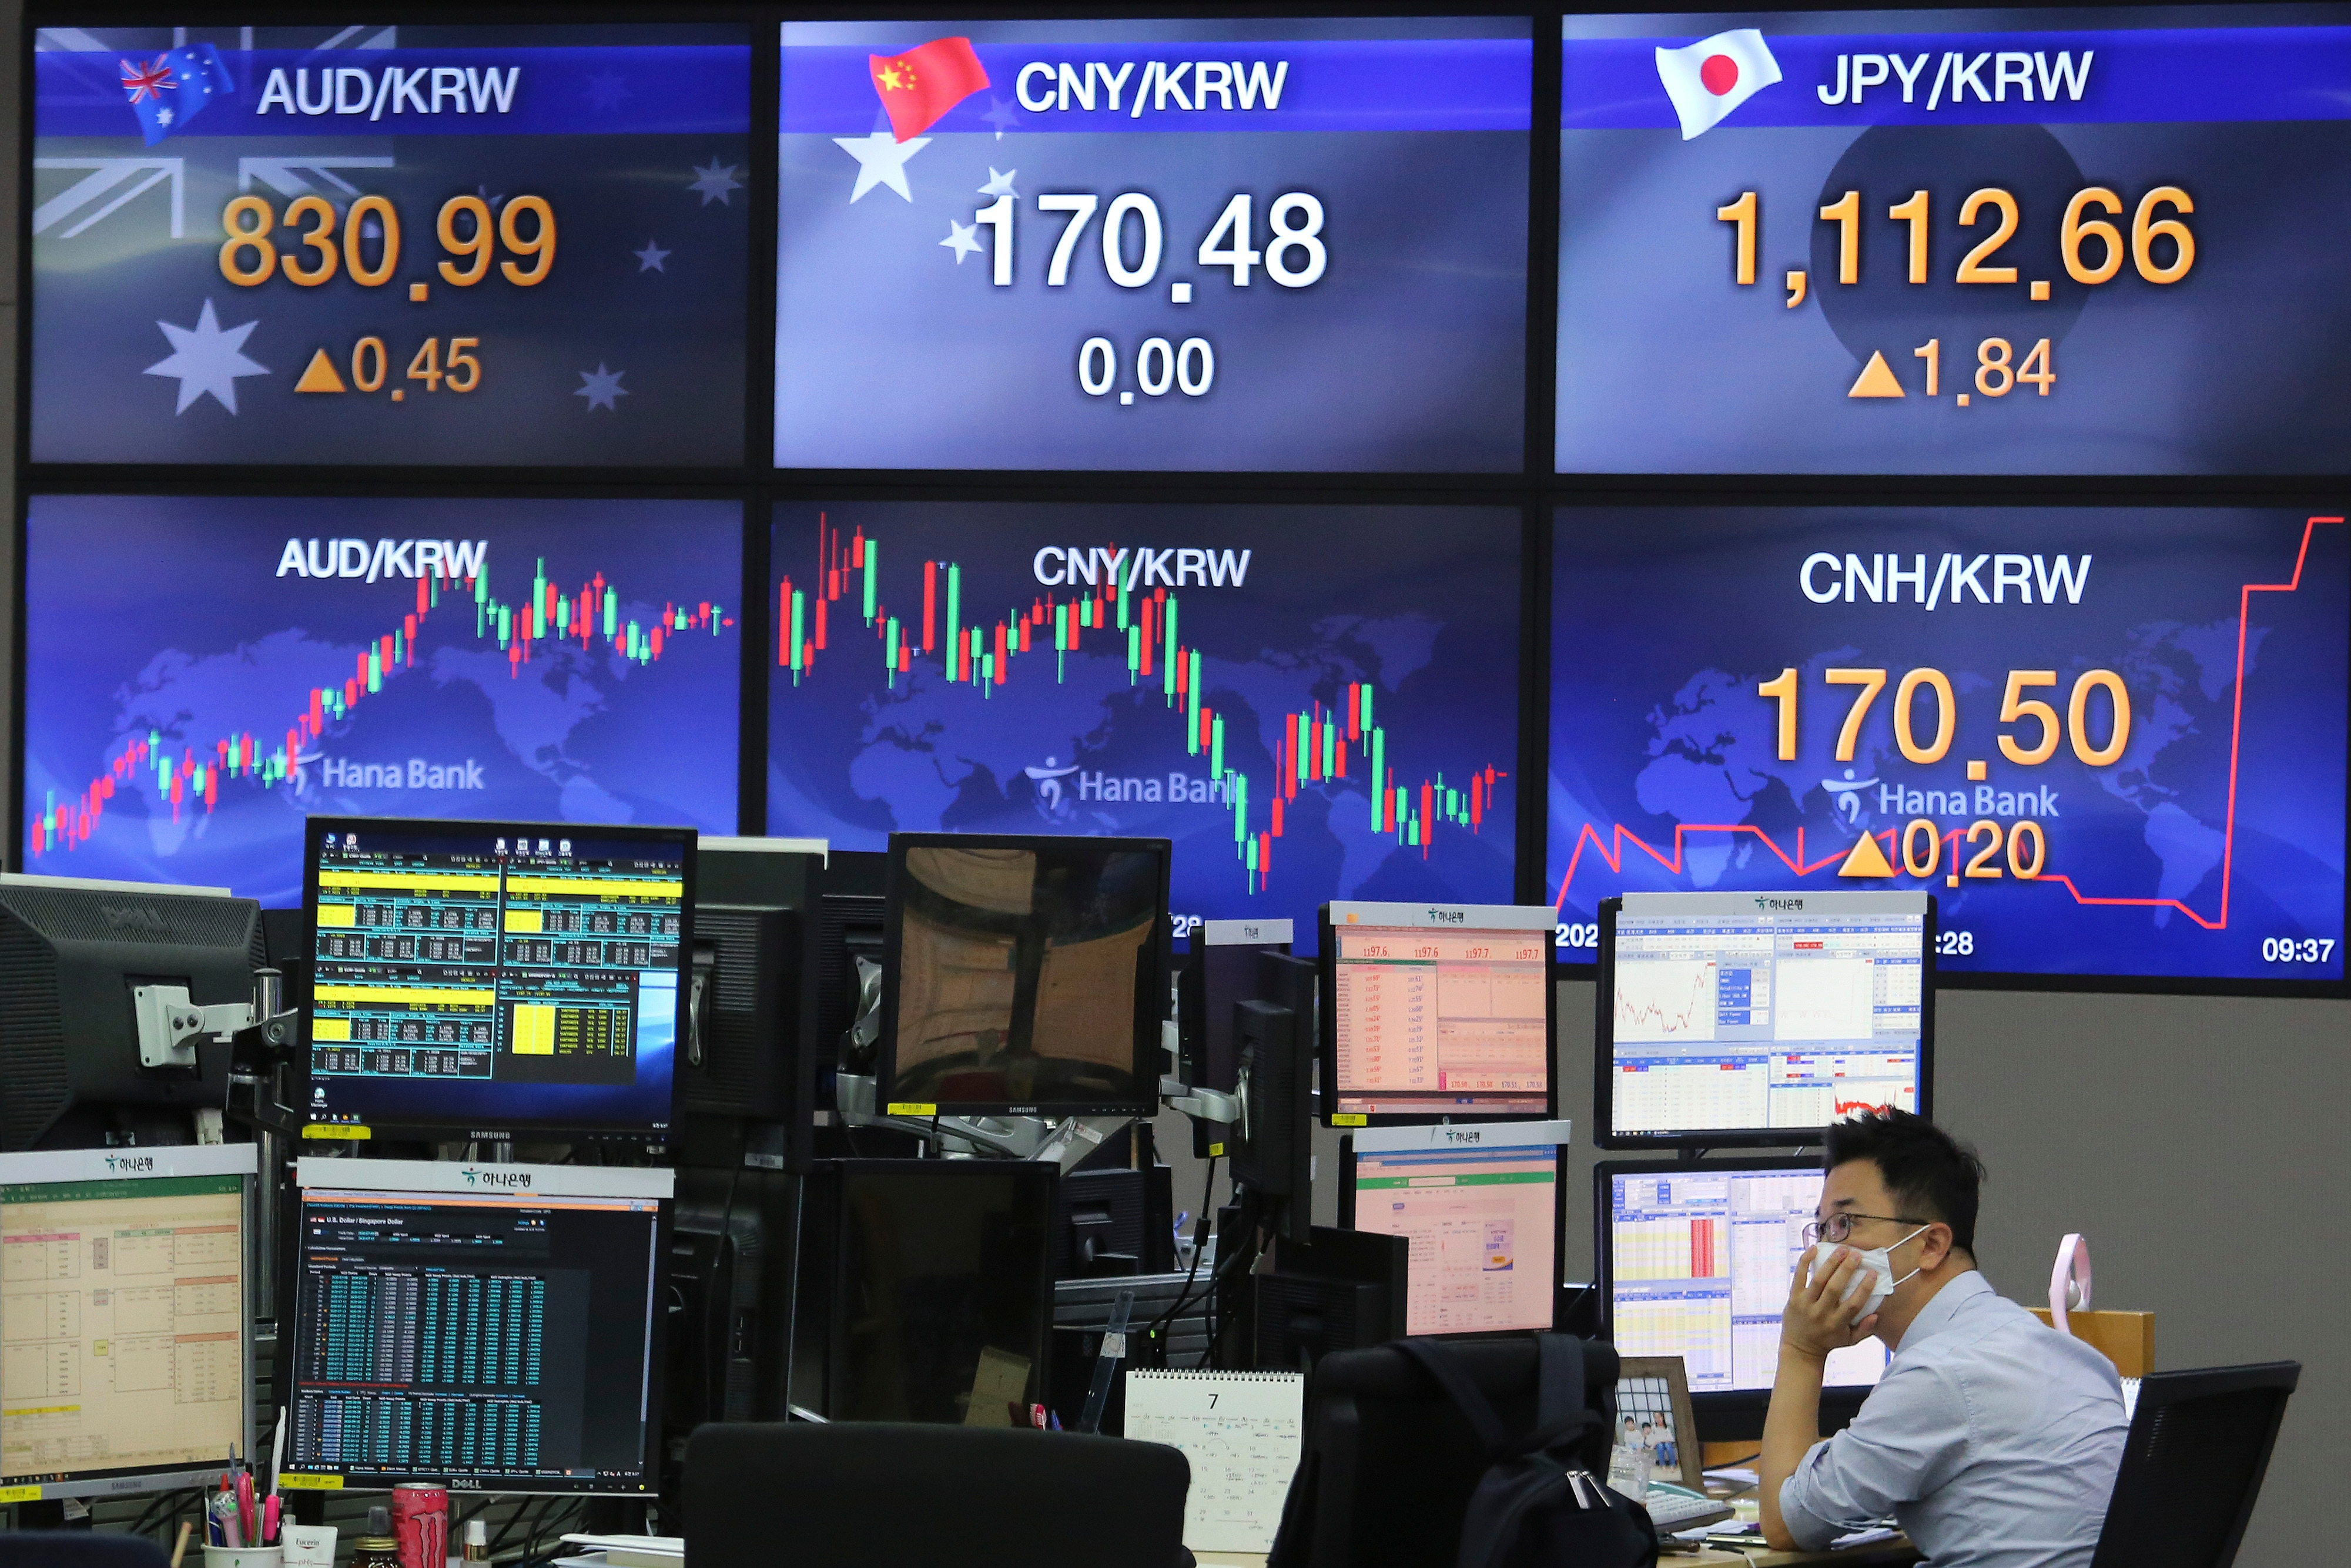 www.voanews.com: Asian Markets Mixed as COVID-19 Pandemic Continues to Cast a Pall